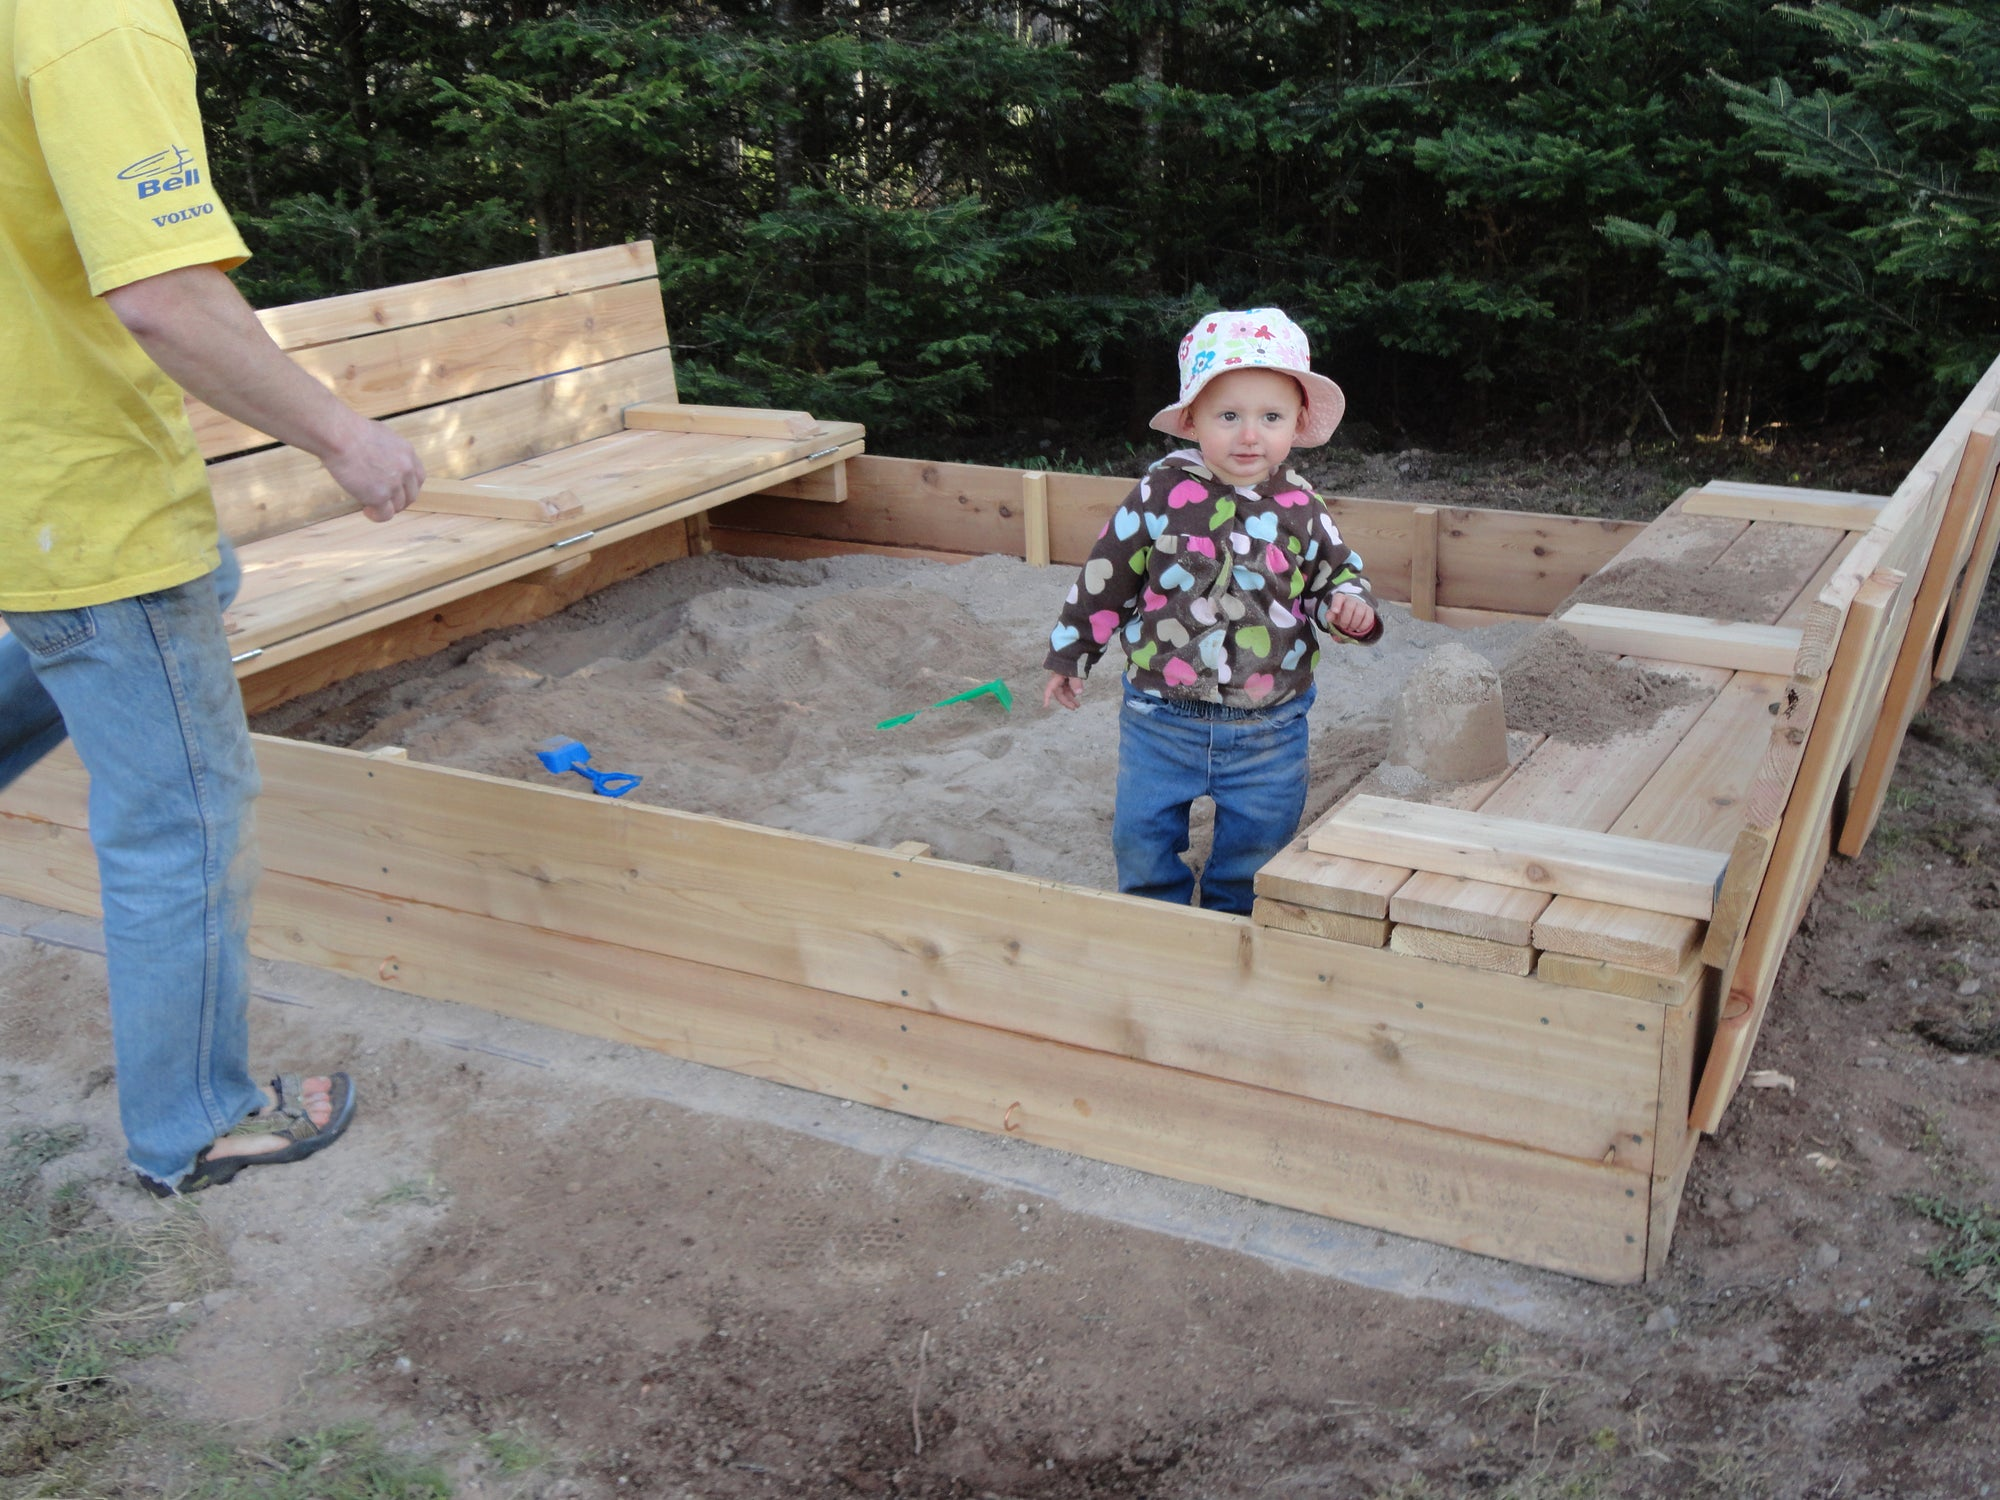 Wooden sandbox with foldable seats